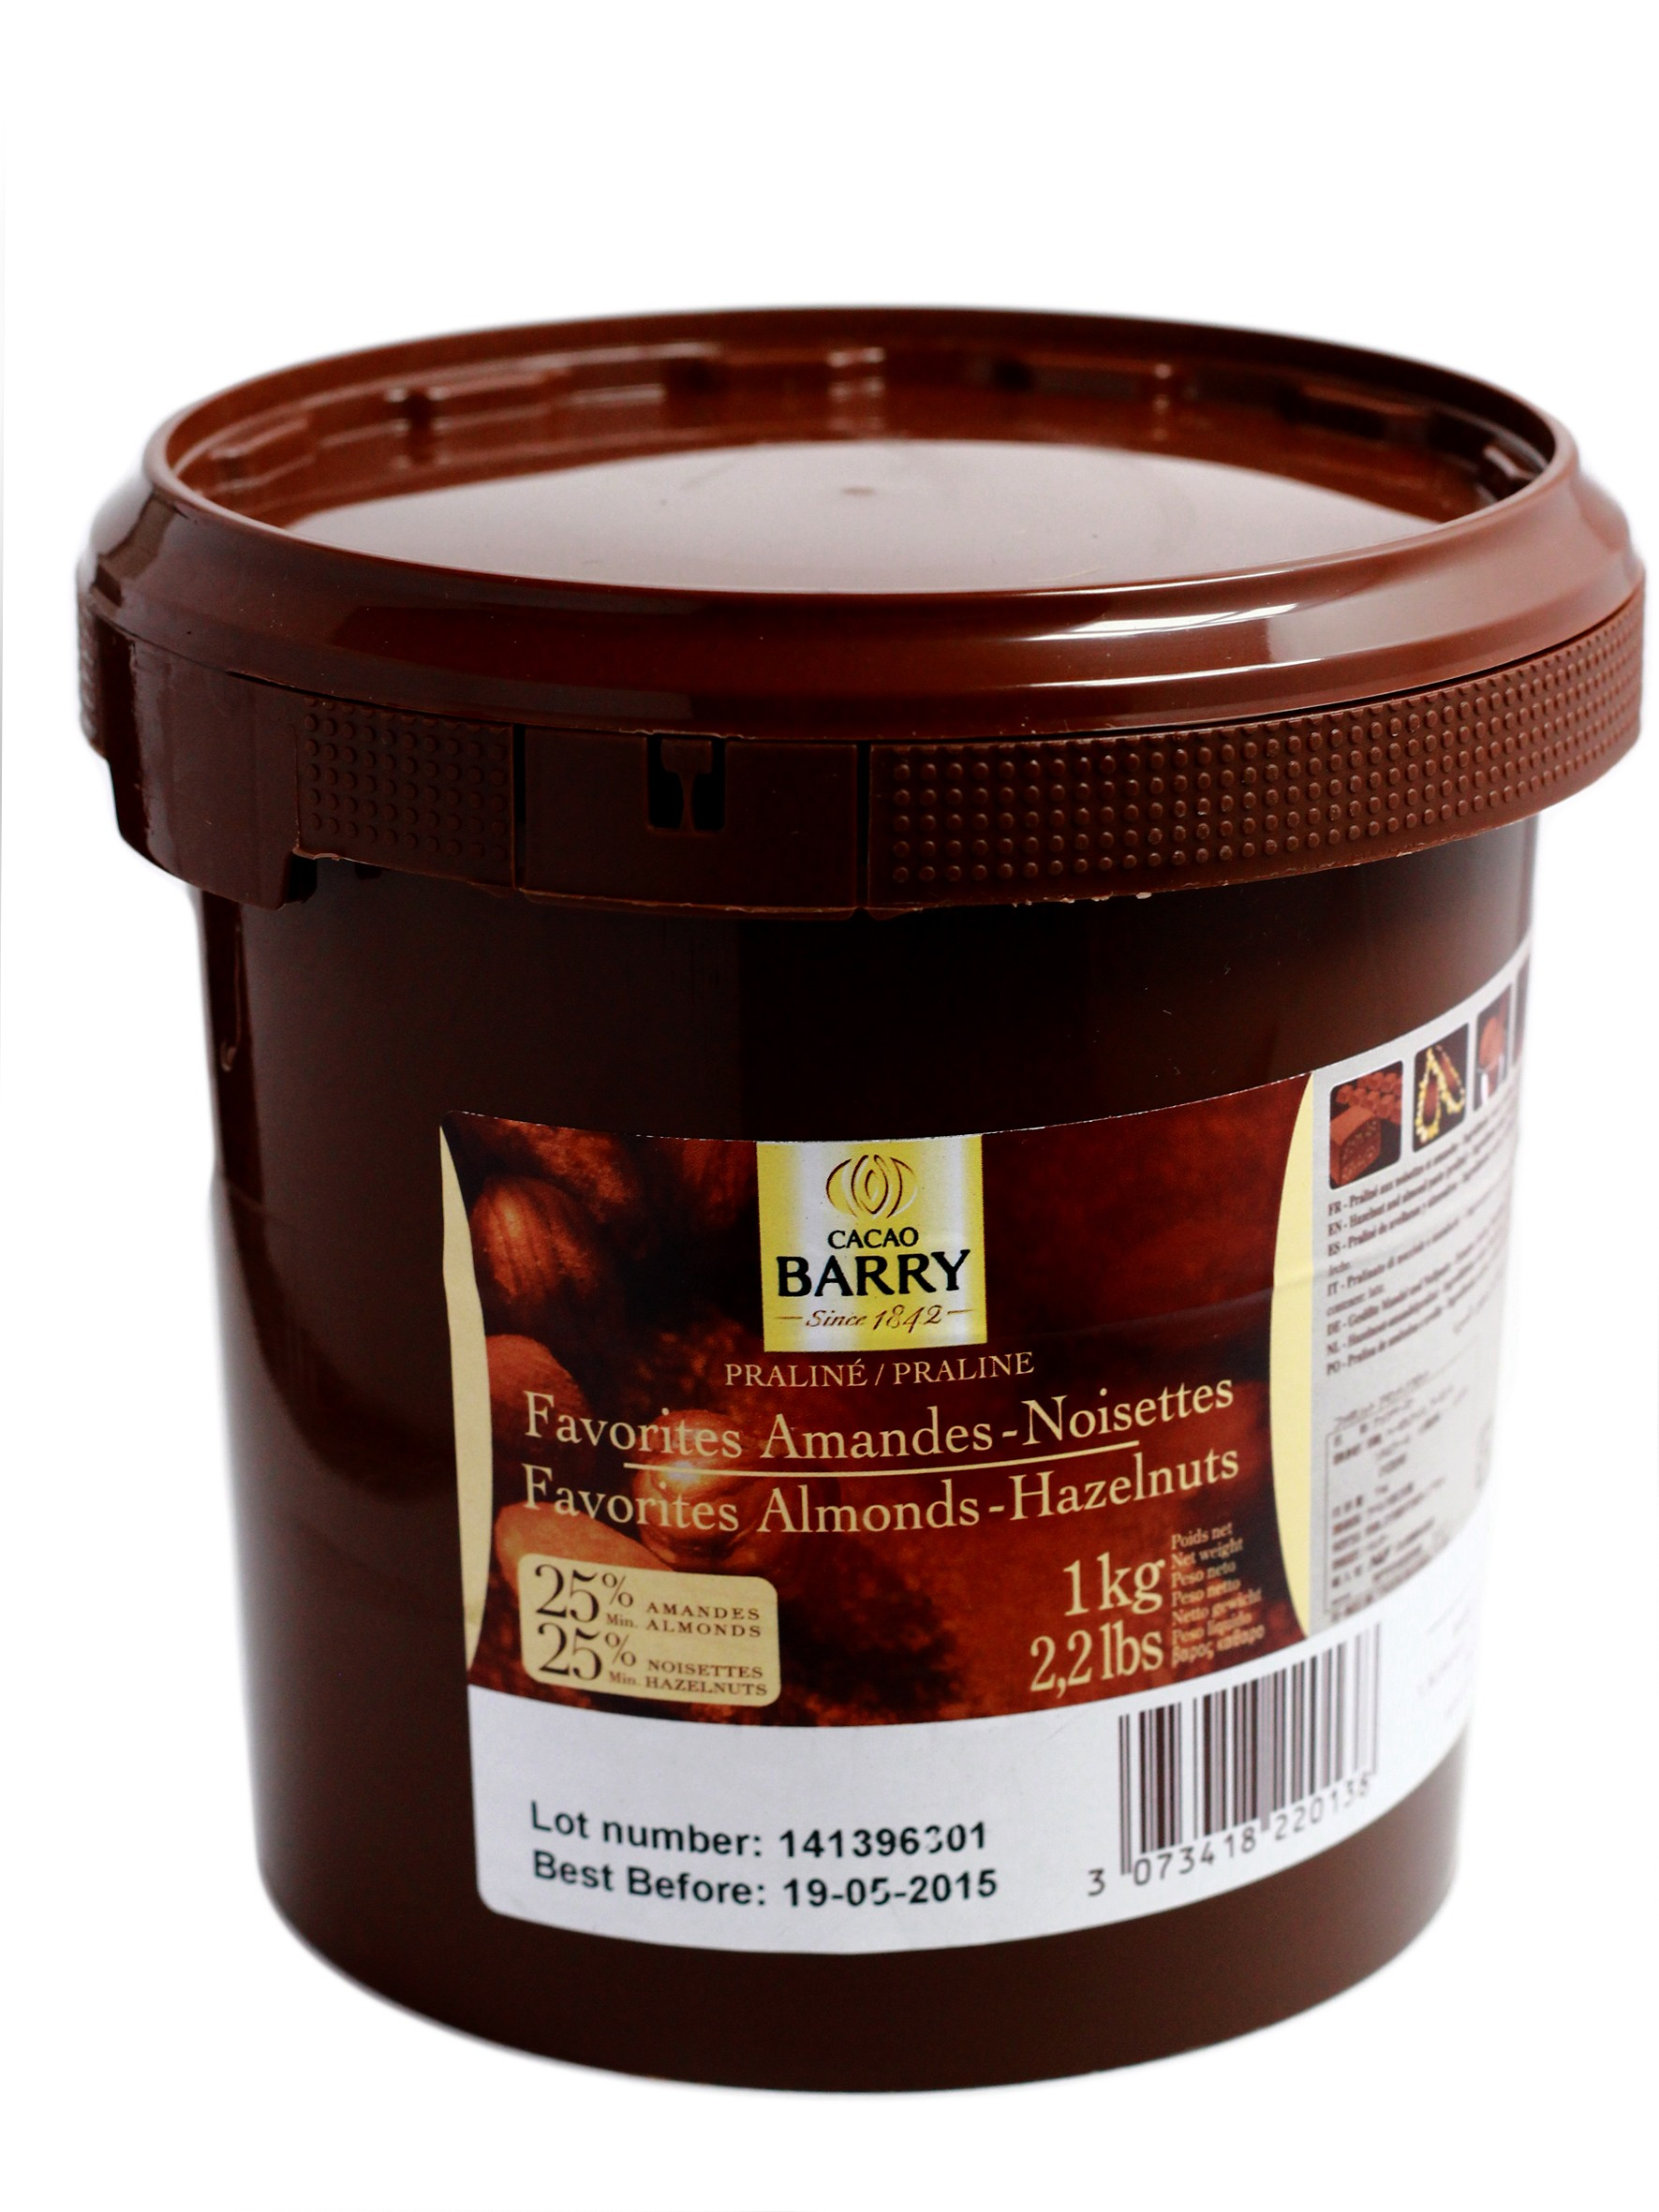 Praline almonds hazelnuts 1 kg plastic jar Barry